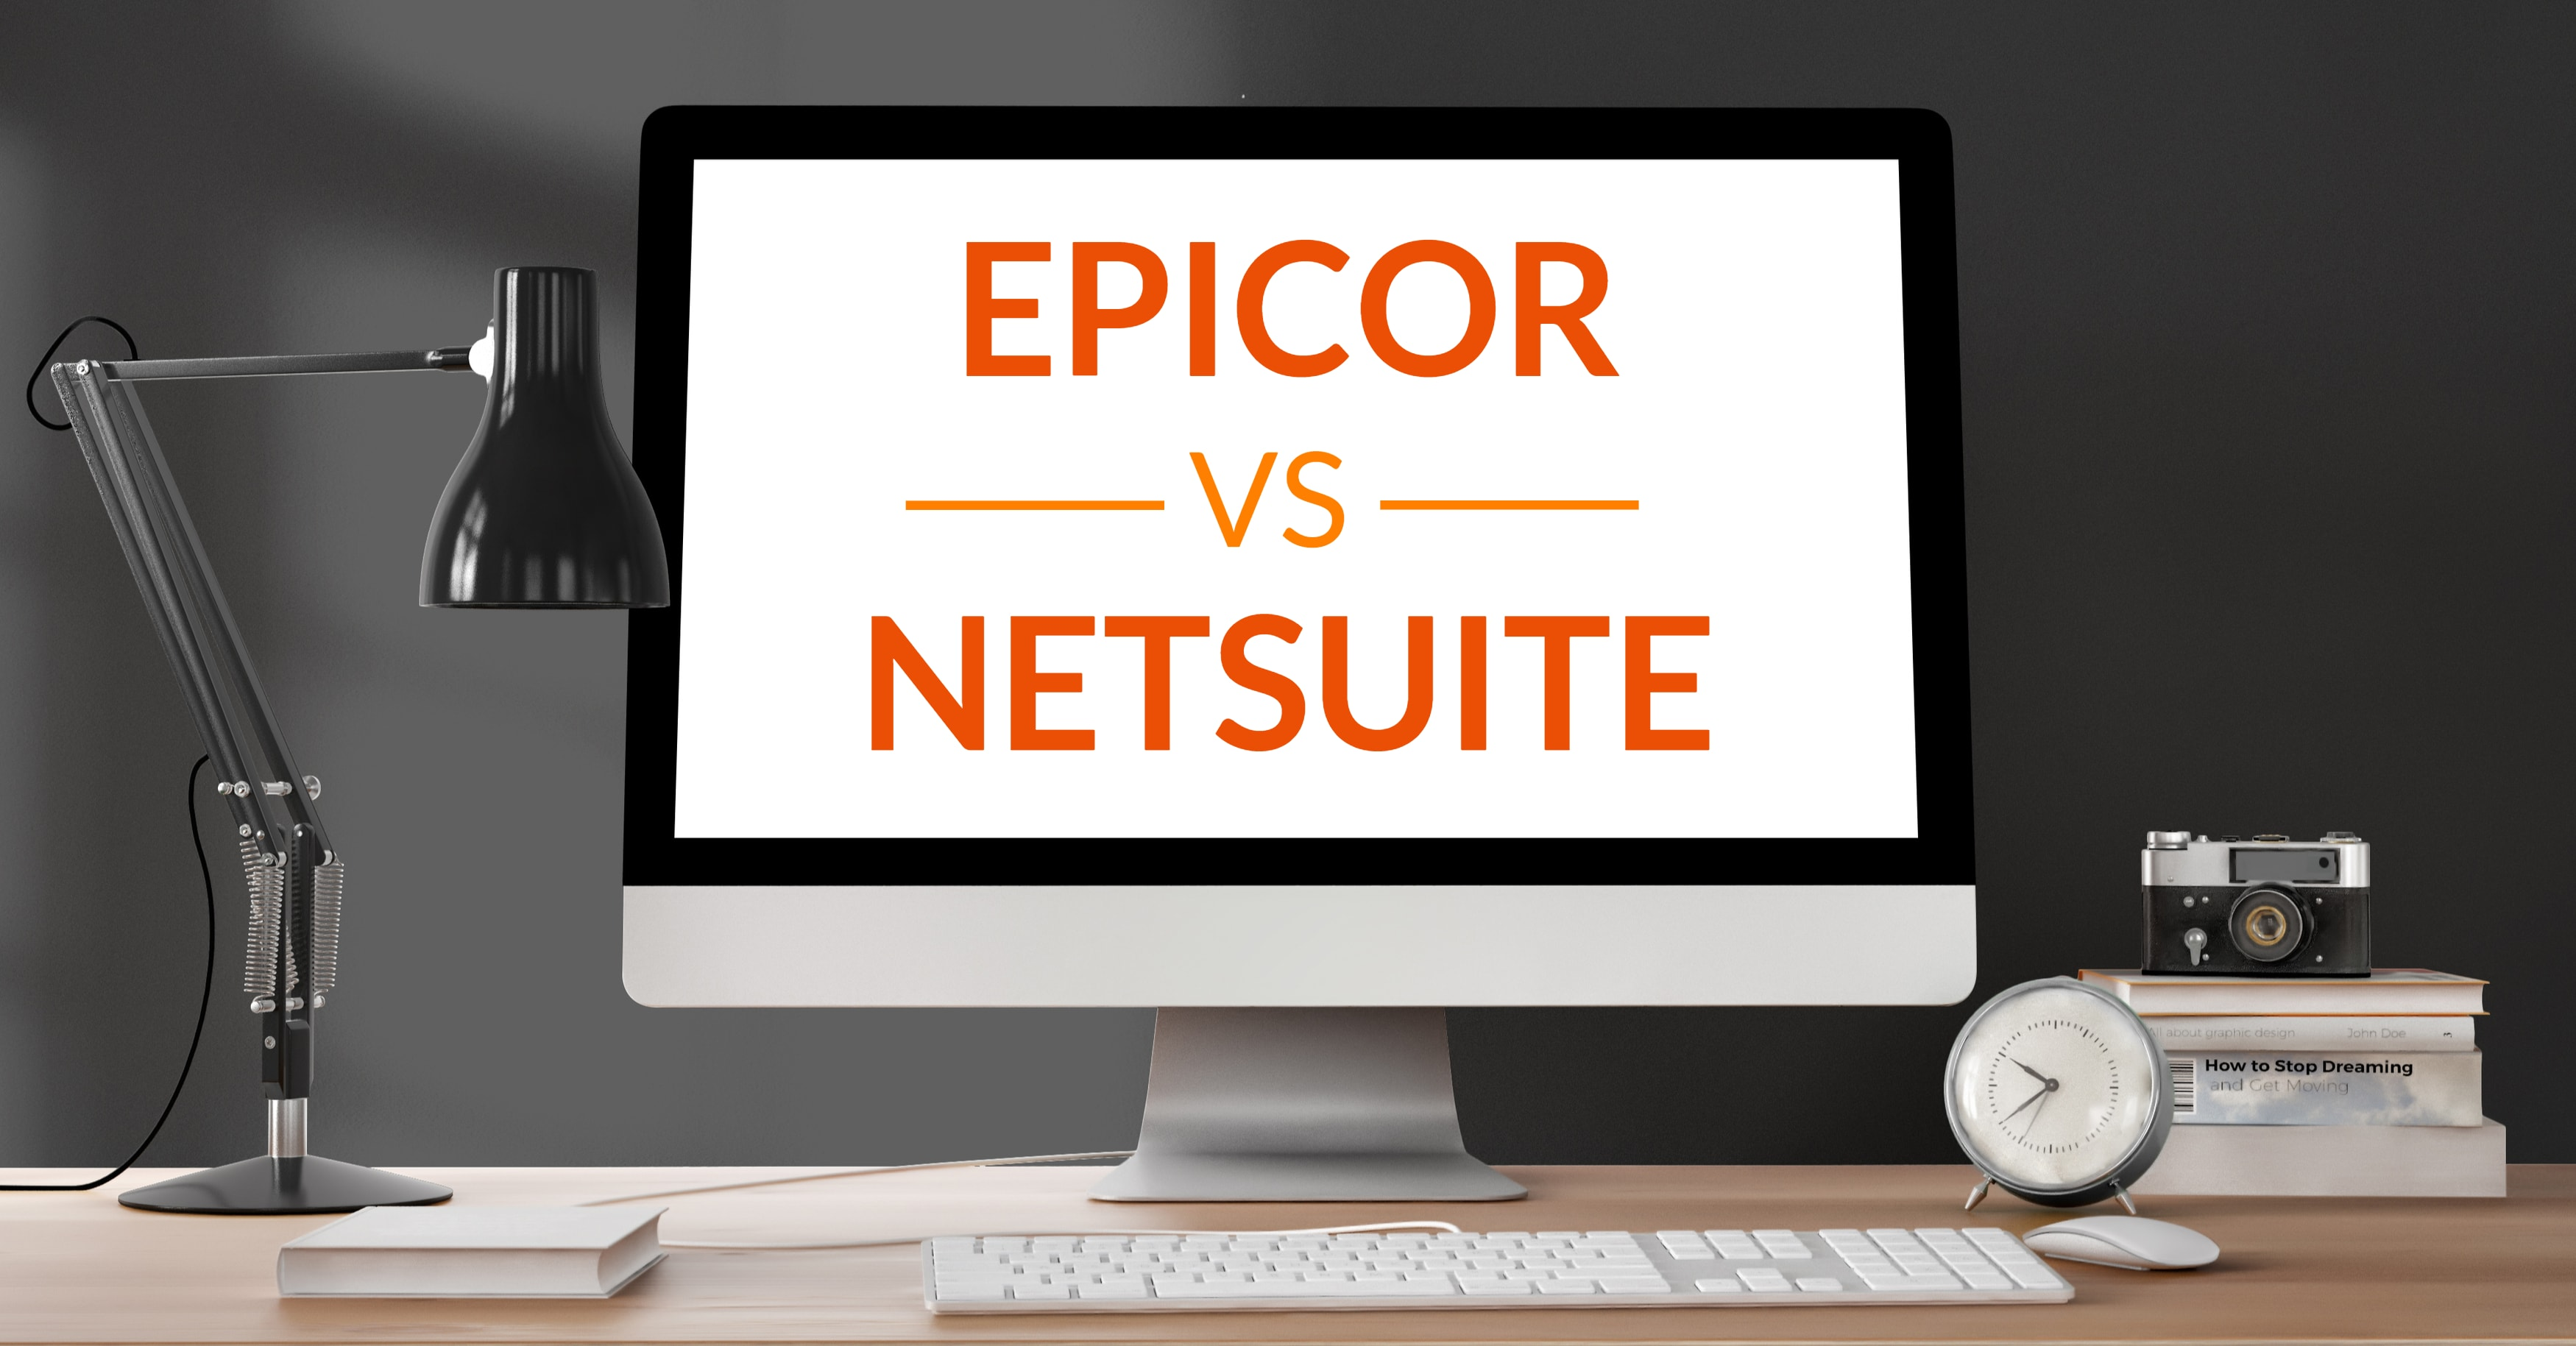 Epicor vs. NetSuite: Which ERP Vendor is for You?